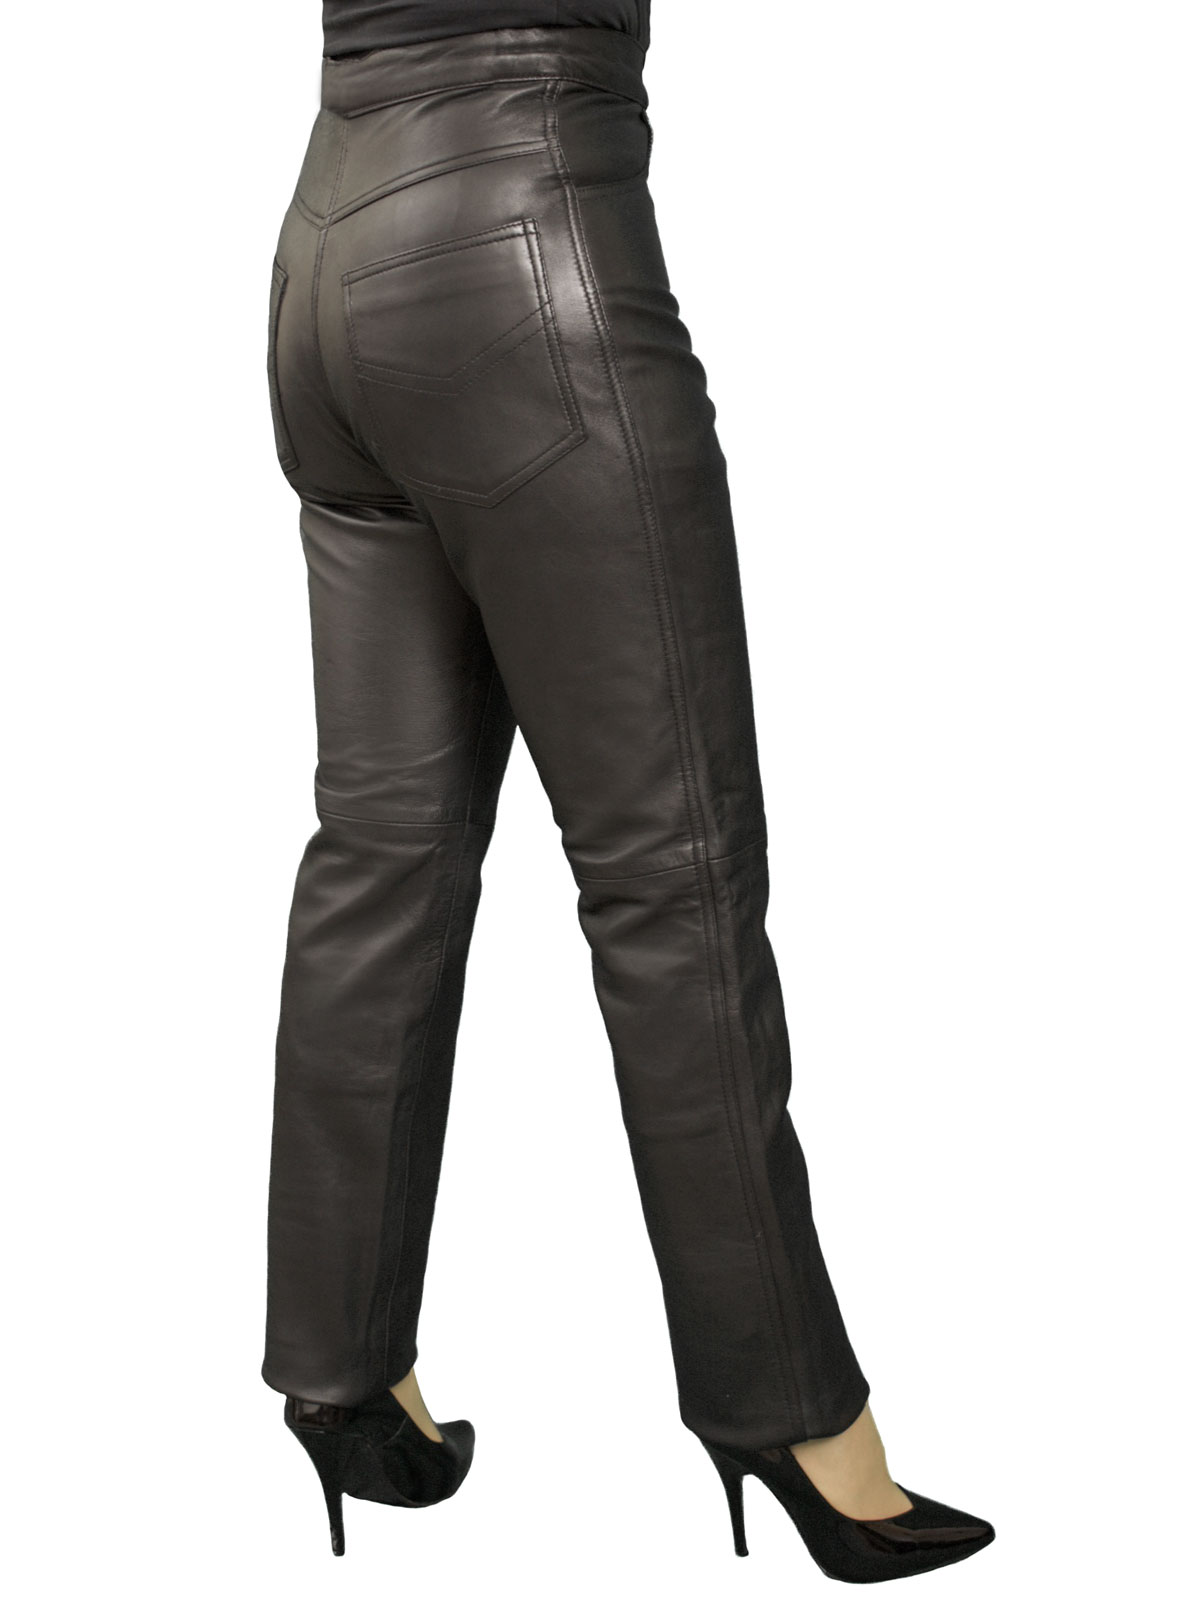 Simple Women Fashion Leather Pants Pictures To Pin On Pinterest